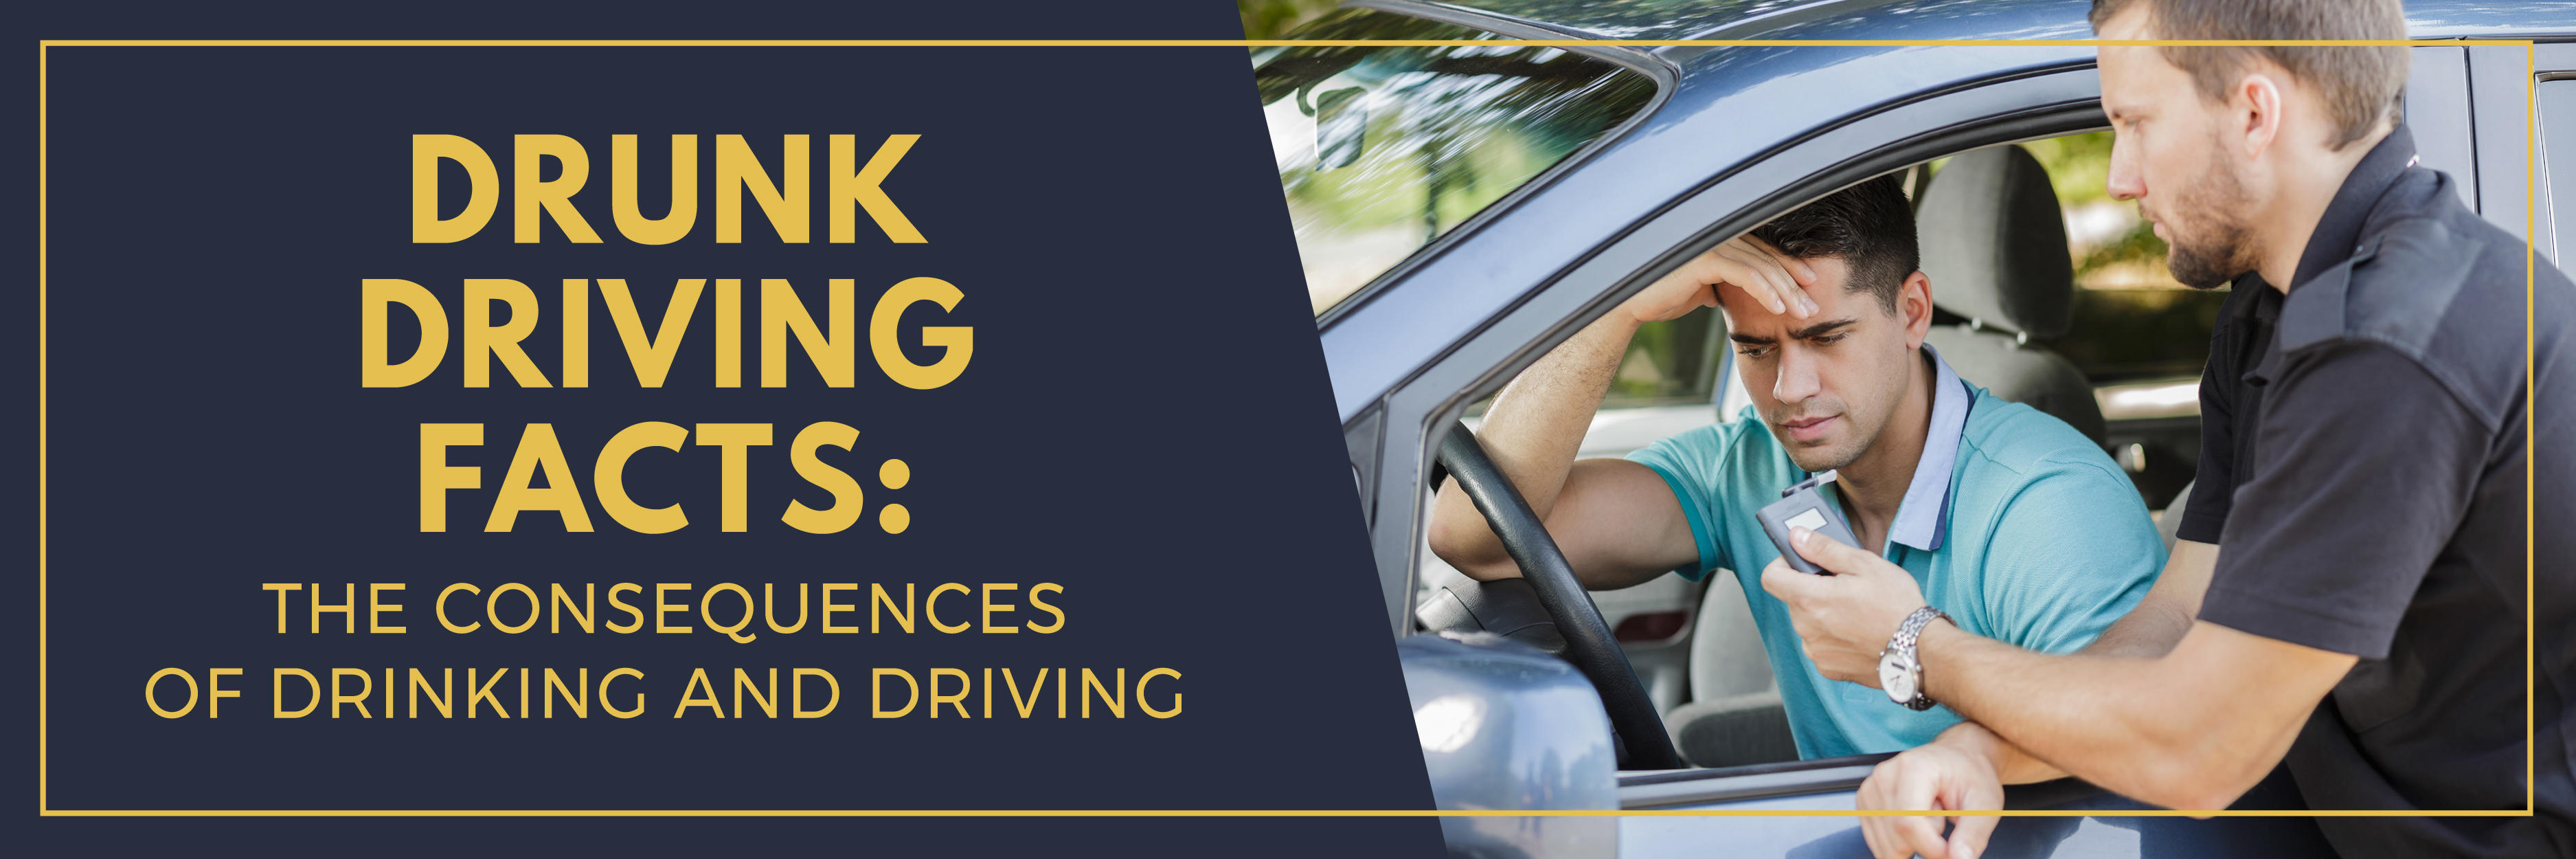 an analysis of drinking and driving offences The number of people caught for drink-driving in nsw is increasing for the first time in years residents of sydney's northern beaches and outer suburbs are being nabbed at higher rates than.